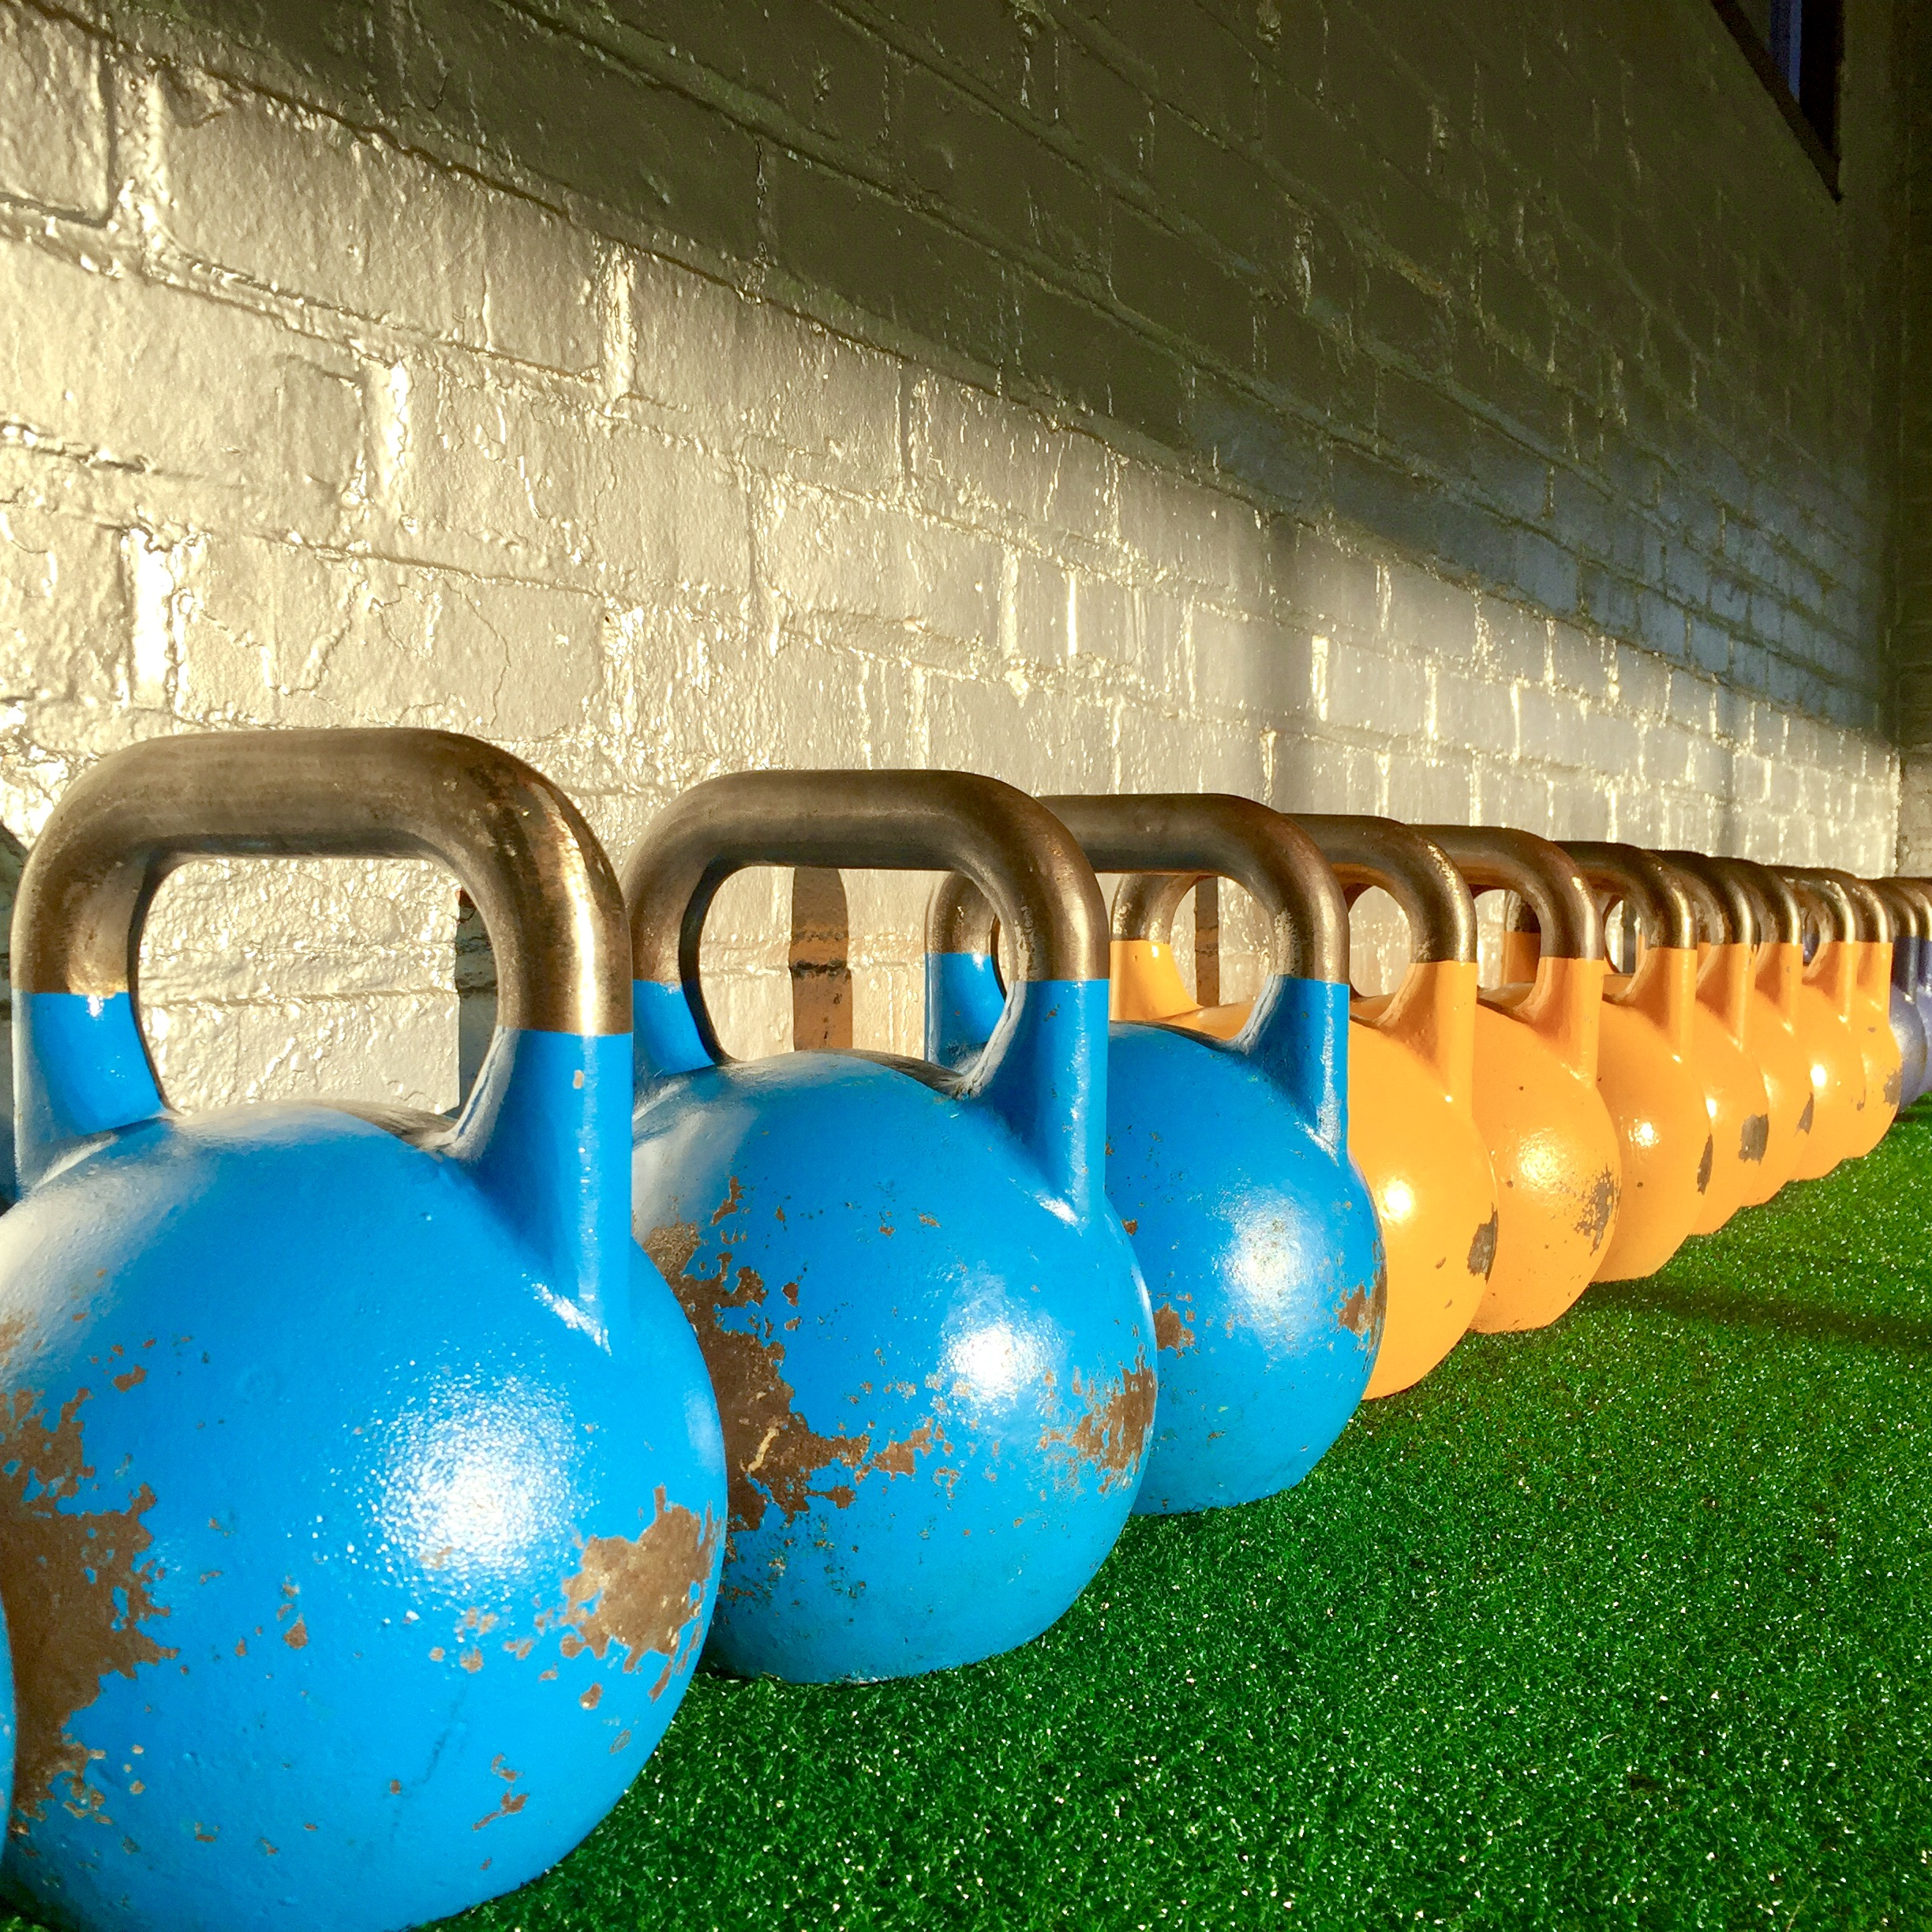 SINGLE OR DOUBLE? - They're both great options. Mix them both into your kettlebell workouts.